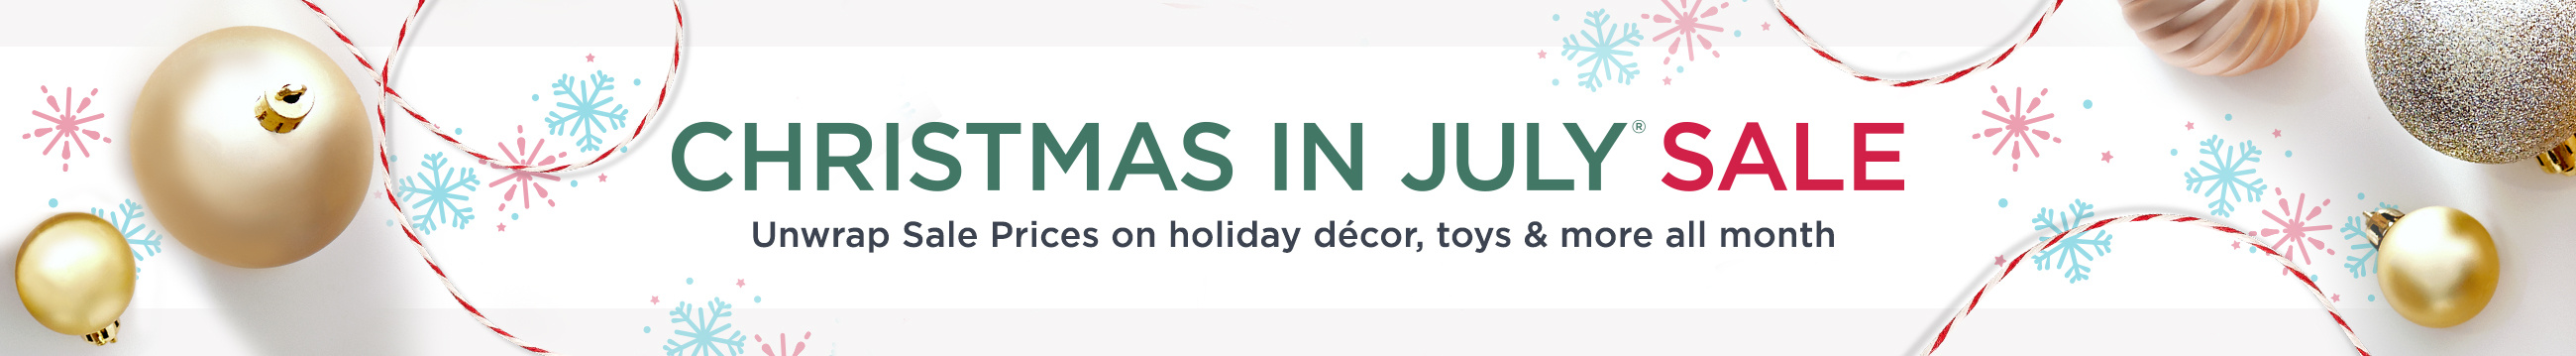 Christmas in July® Sale   Unwrap Sale Prices on holiday décor, toys & more all month!